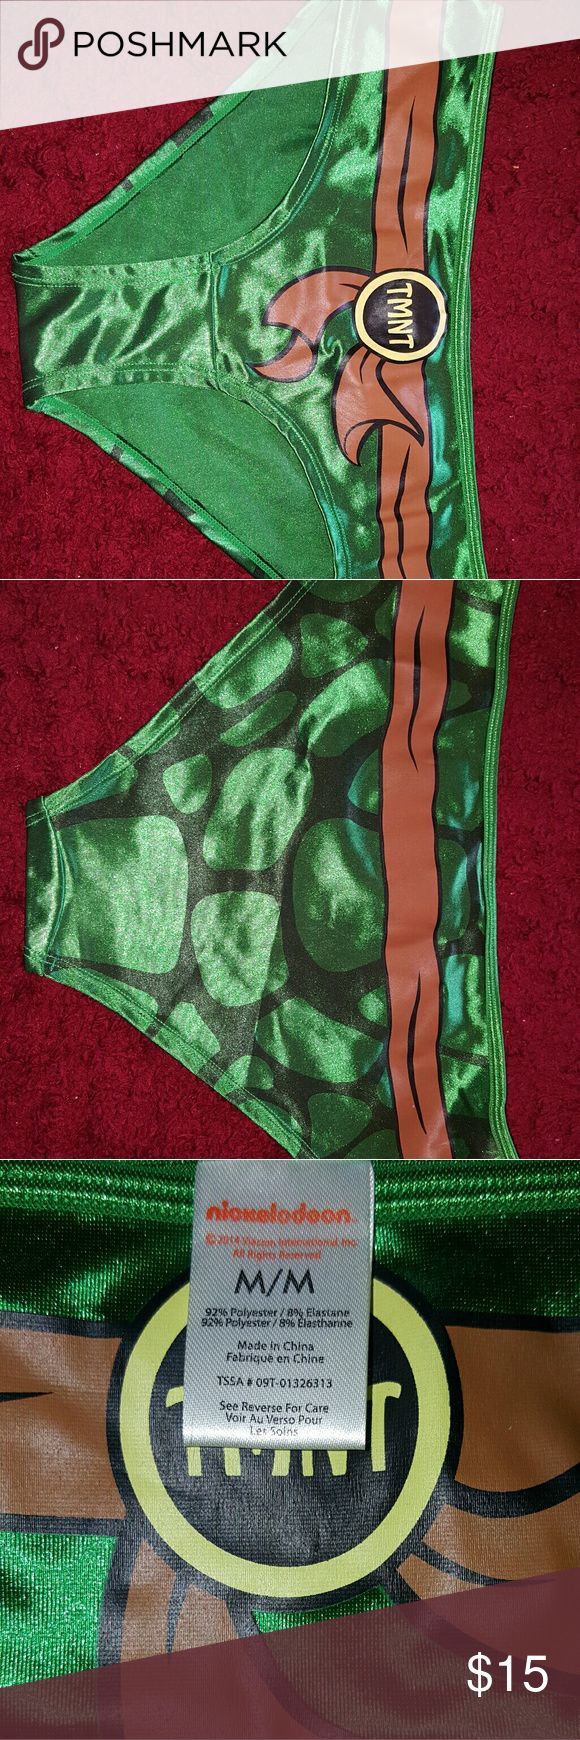 Nickelodeon Ninja Turtle Halloween Costume Nickelodeon Ninja Turtle Halloween Costume. Super cute and comfortable! Goes great with panty hose. Worn once! Nickelodeon Other